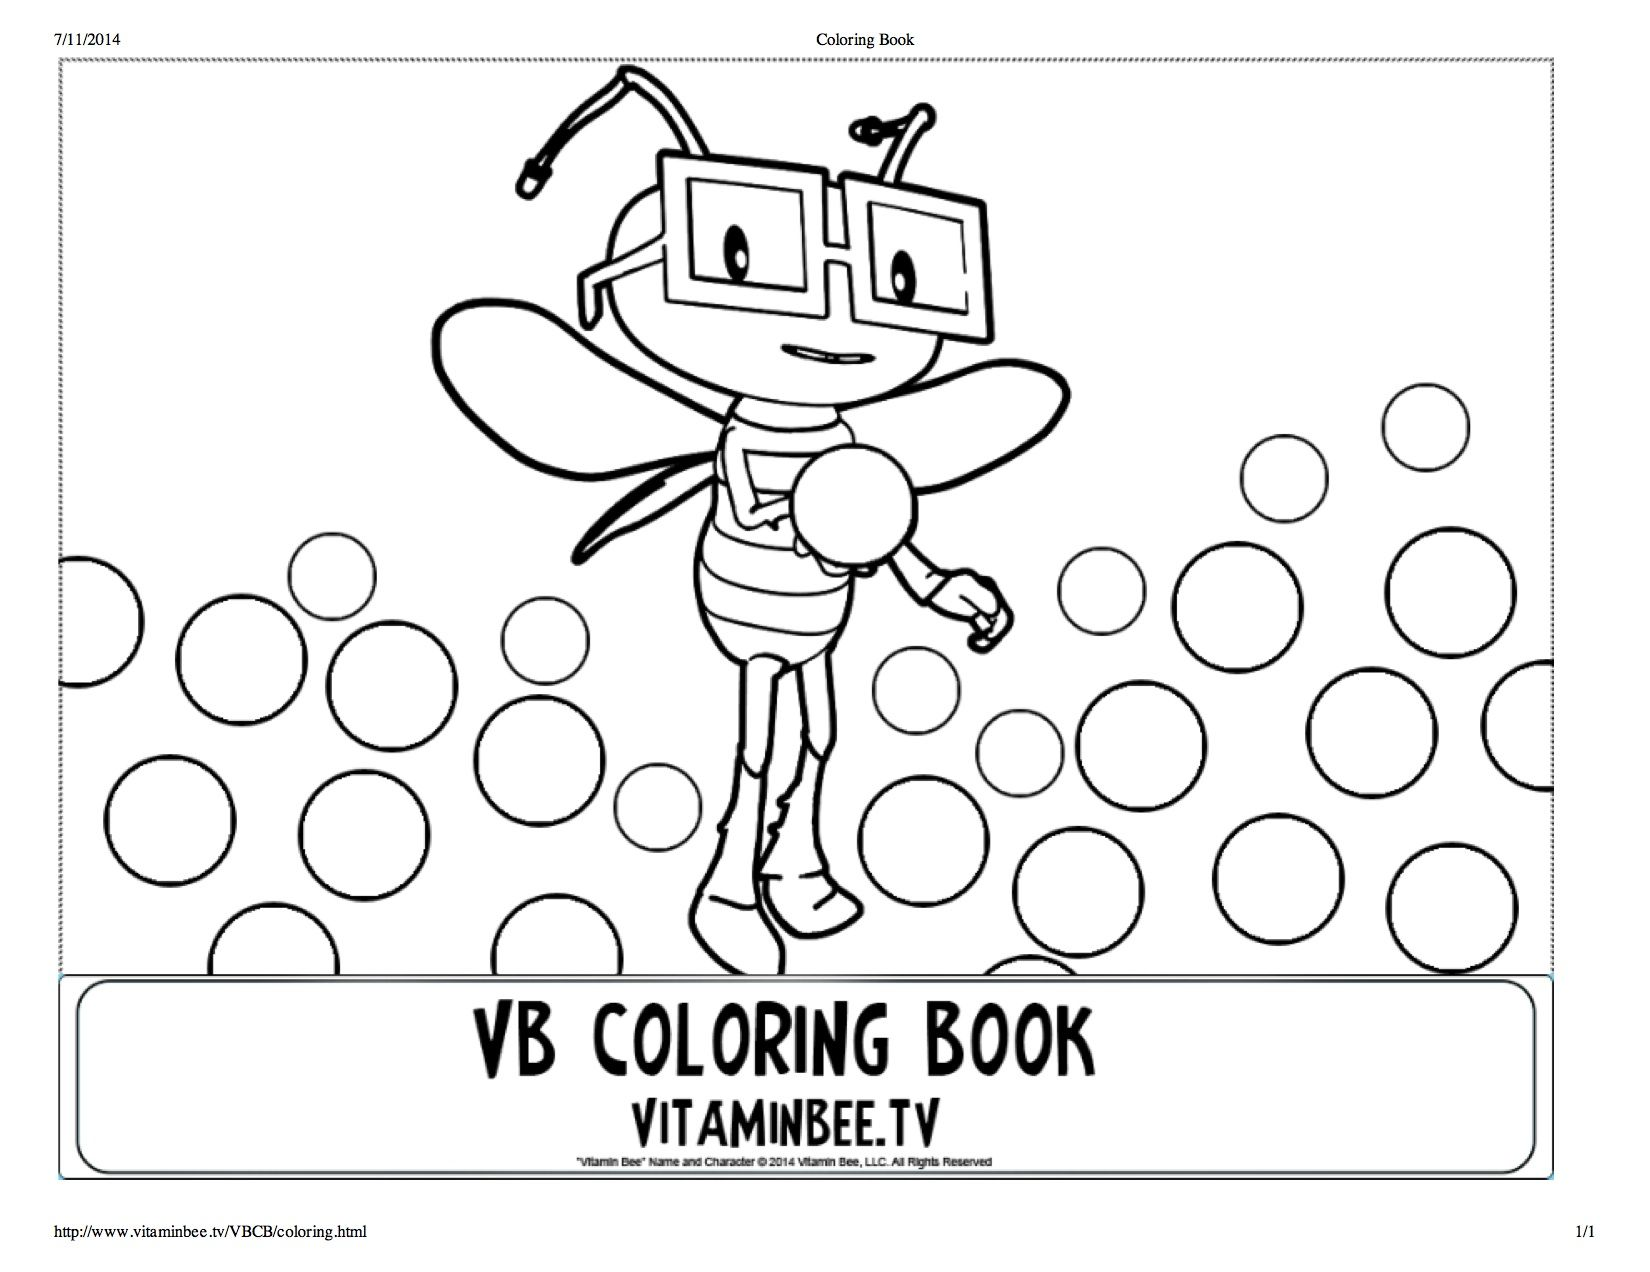 Print To Color With Crayons Or Click The Image Twice To